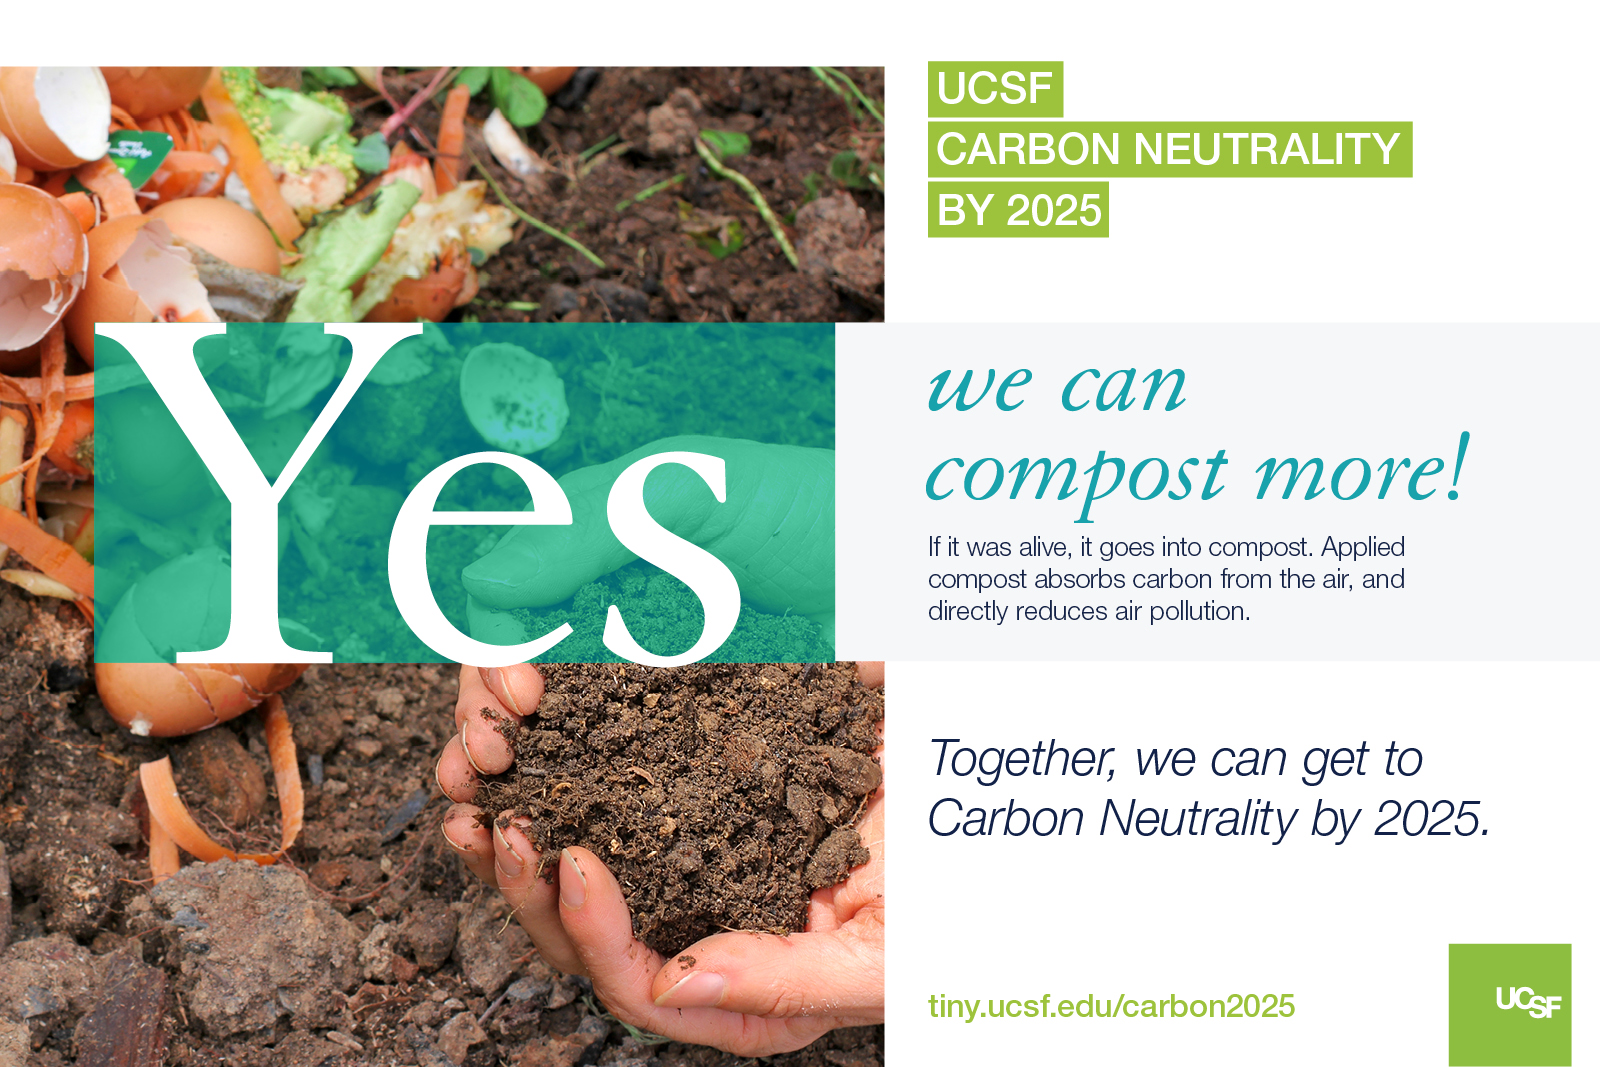 We can compost more